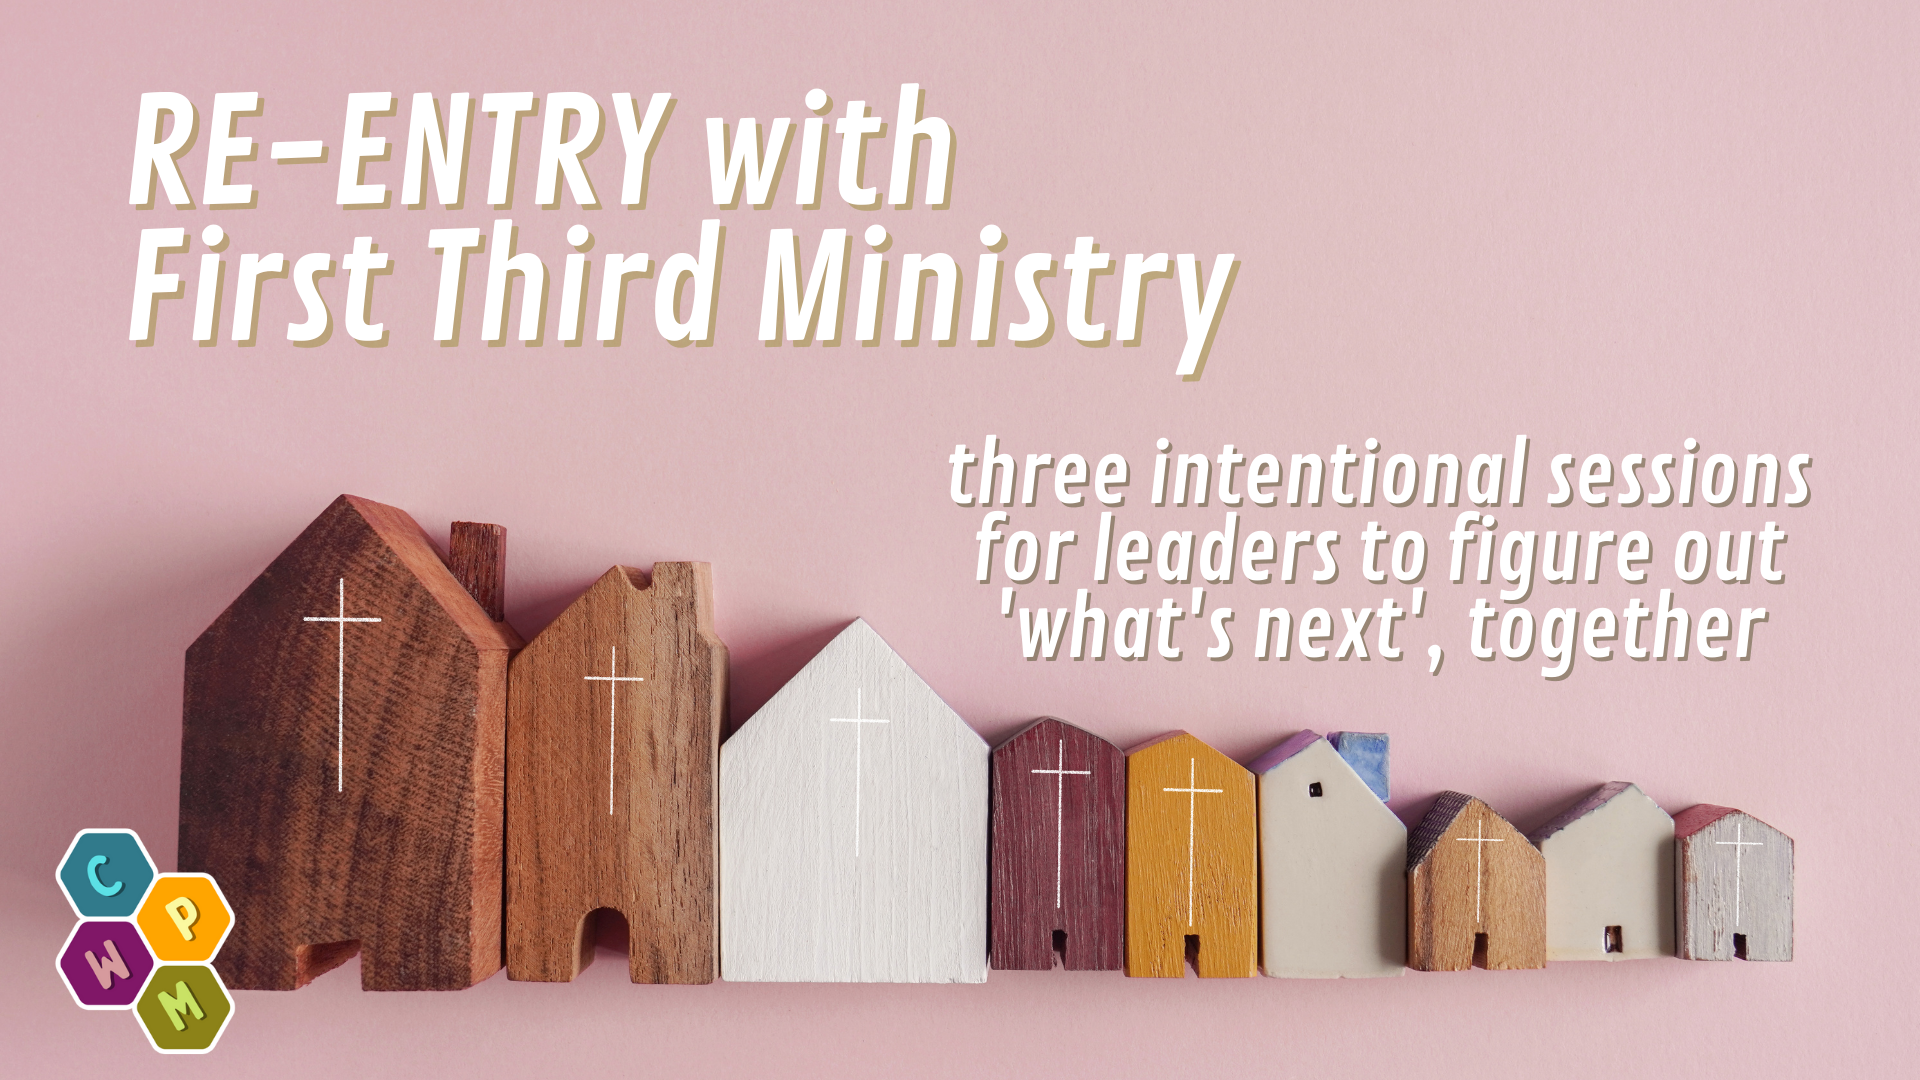 A row of wooden block toy church buildings of various colours and sizes on a dusty pink background. Title: Re-Entry with First Third Ministry.